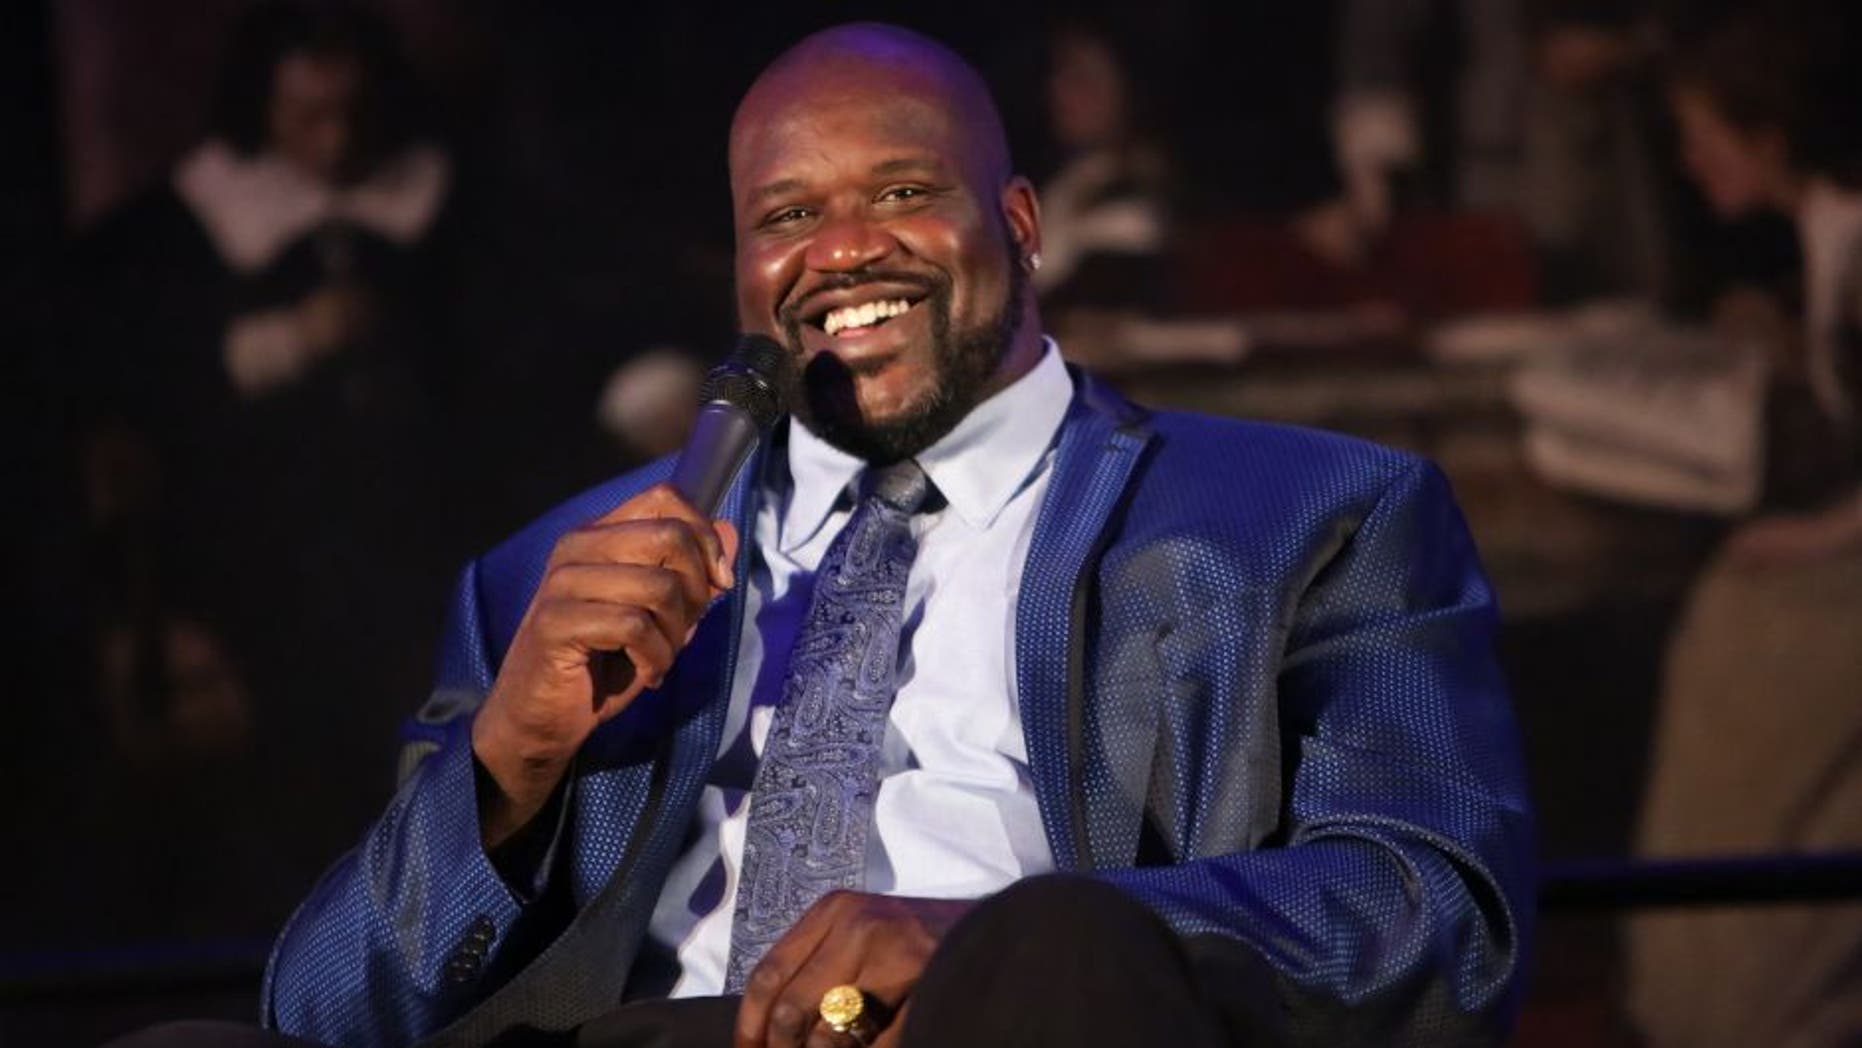 NEW YORK, NY - OCTOBER 05: Former professional basketball player/author Shaquille O'Neal speaks on stage during LIVE from the NYPL: Shaquille O'Neal held at the New York Public Library - Stephen A. Schwartzman Building on October 5, 2015 in New York City. (Photo by Brent N. Clarke/Getty Images)